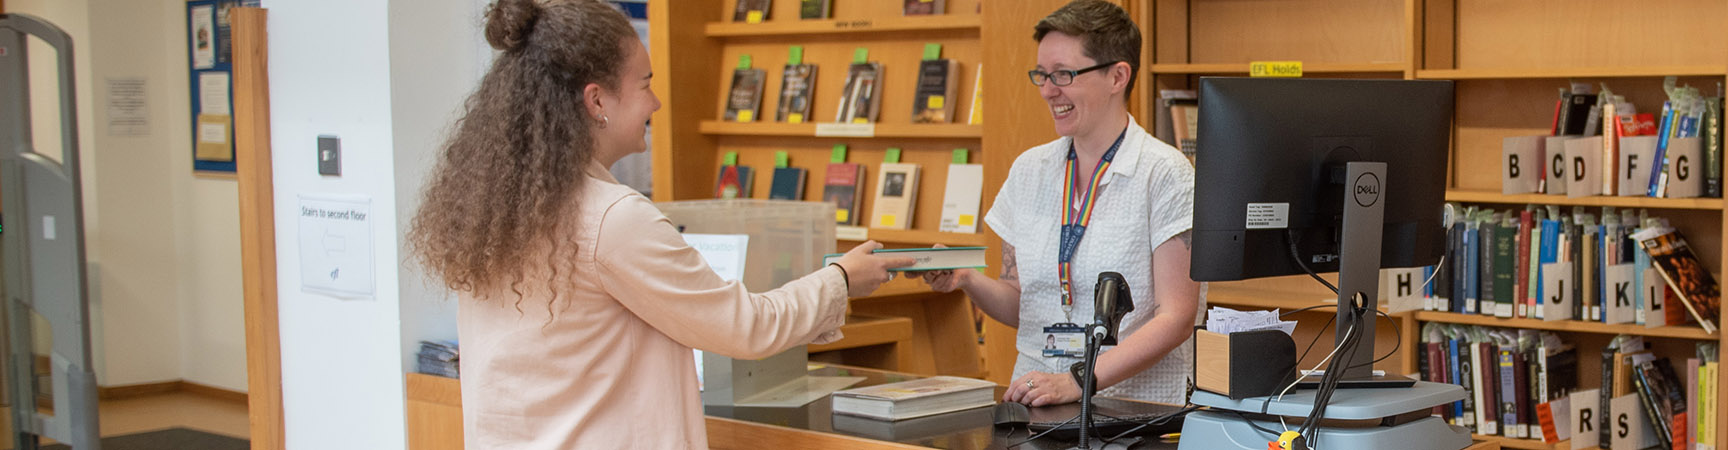 A student handing a book to a librarian at the information desk